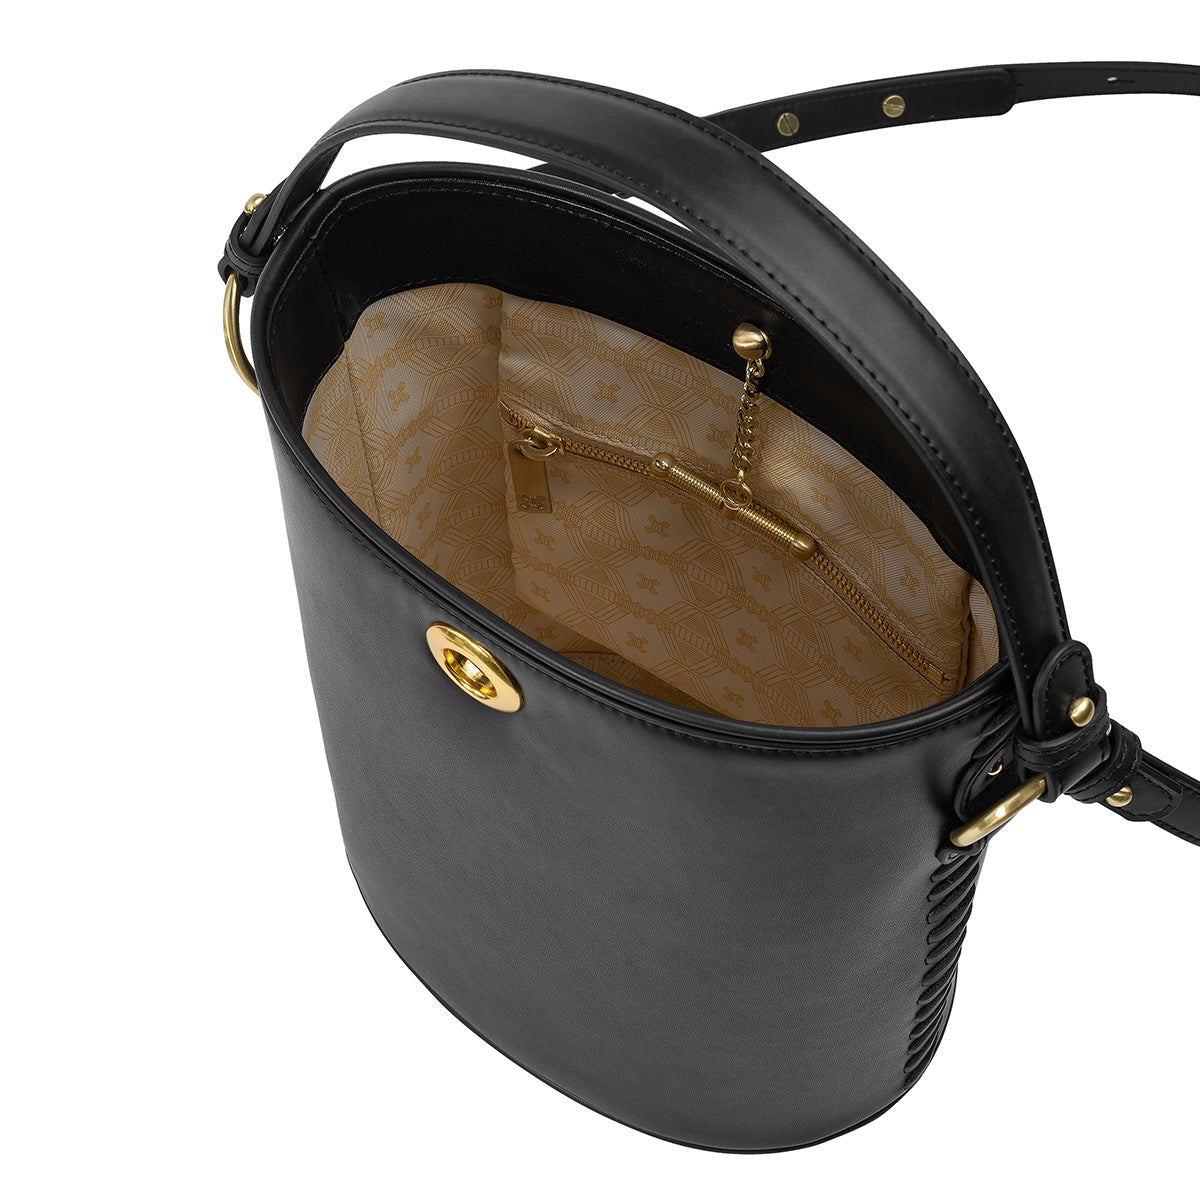 THE LOLA BUCKET BAG